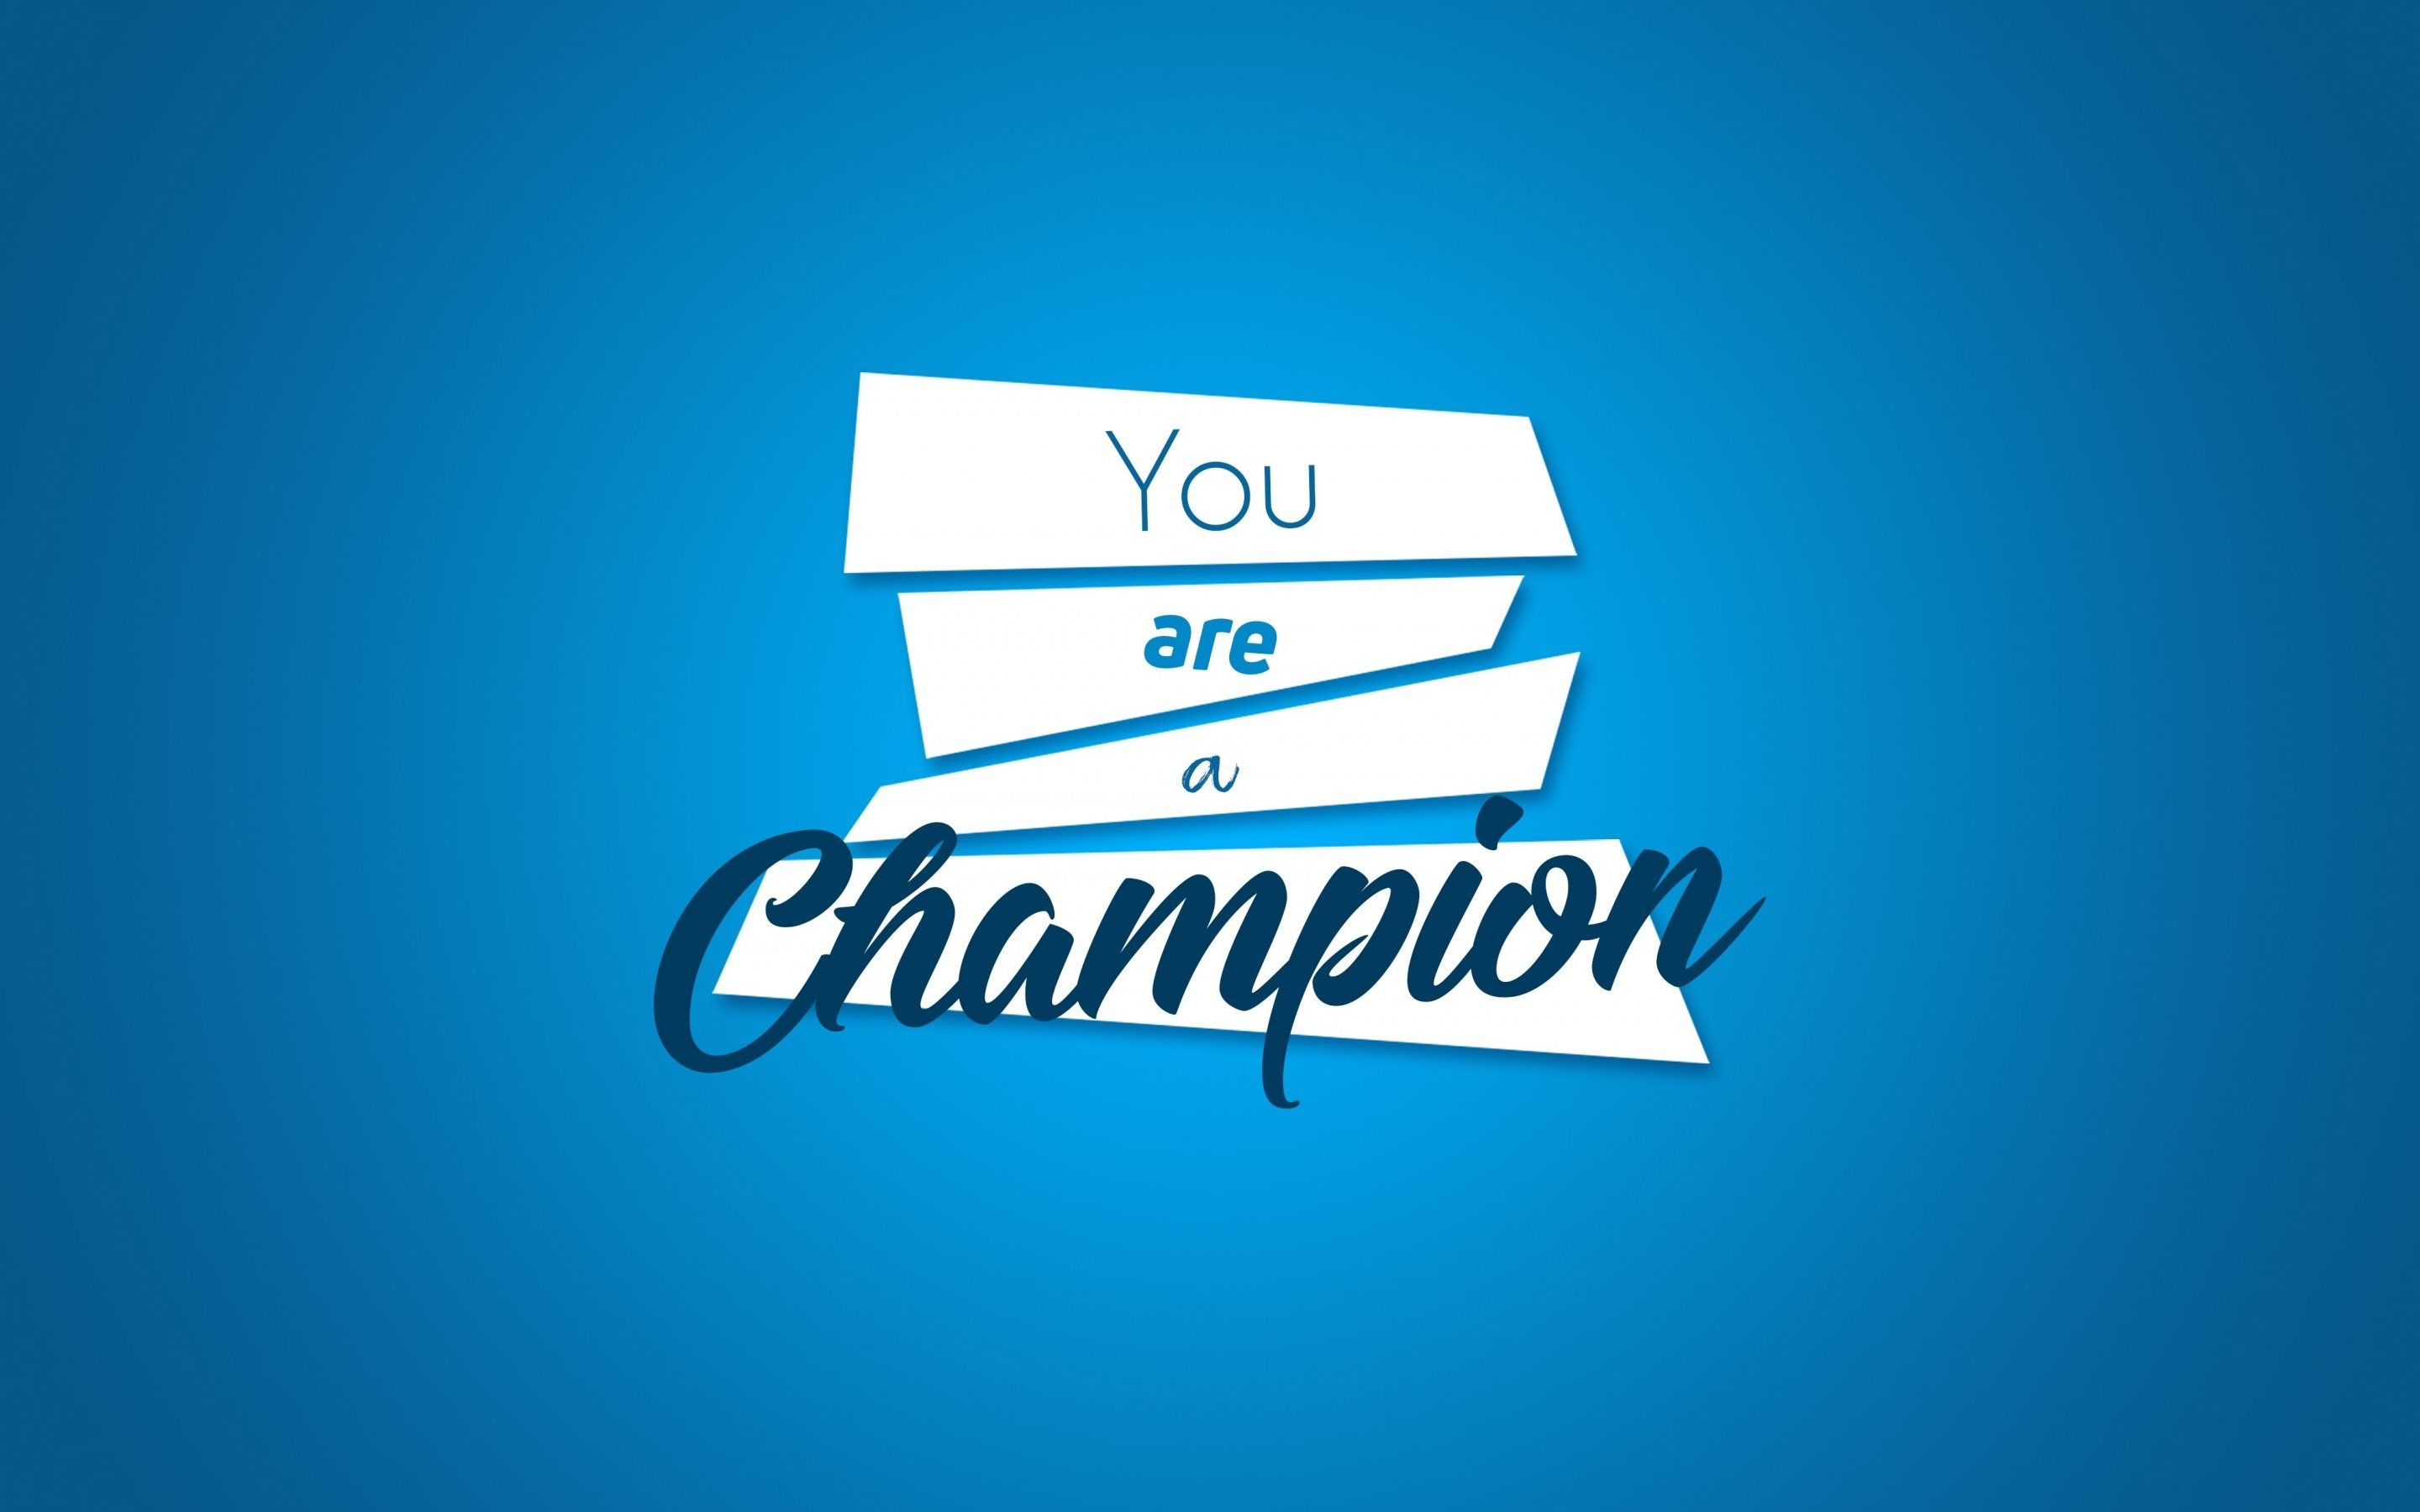 2880x1800 Download wallpapers Quotes, you are a champion, wallpaper ...